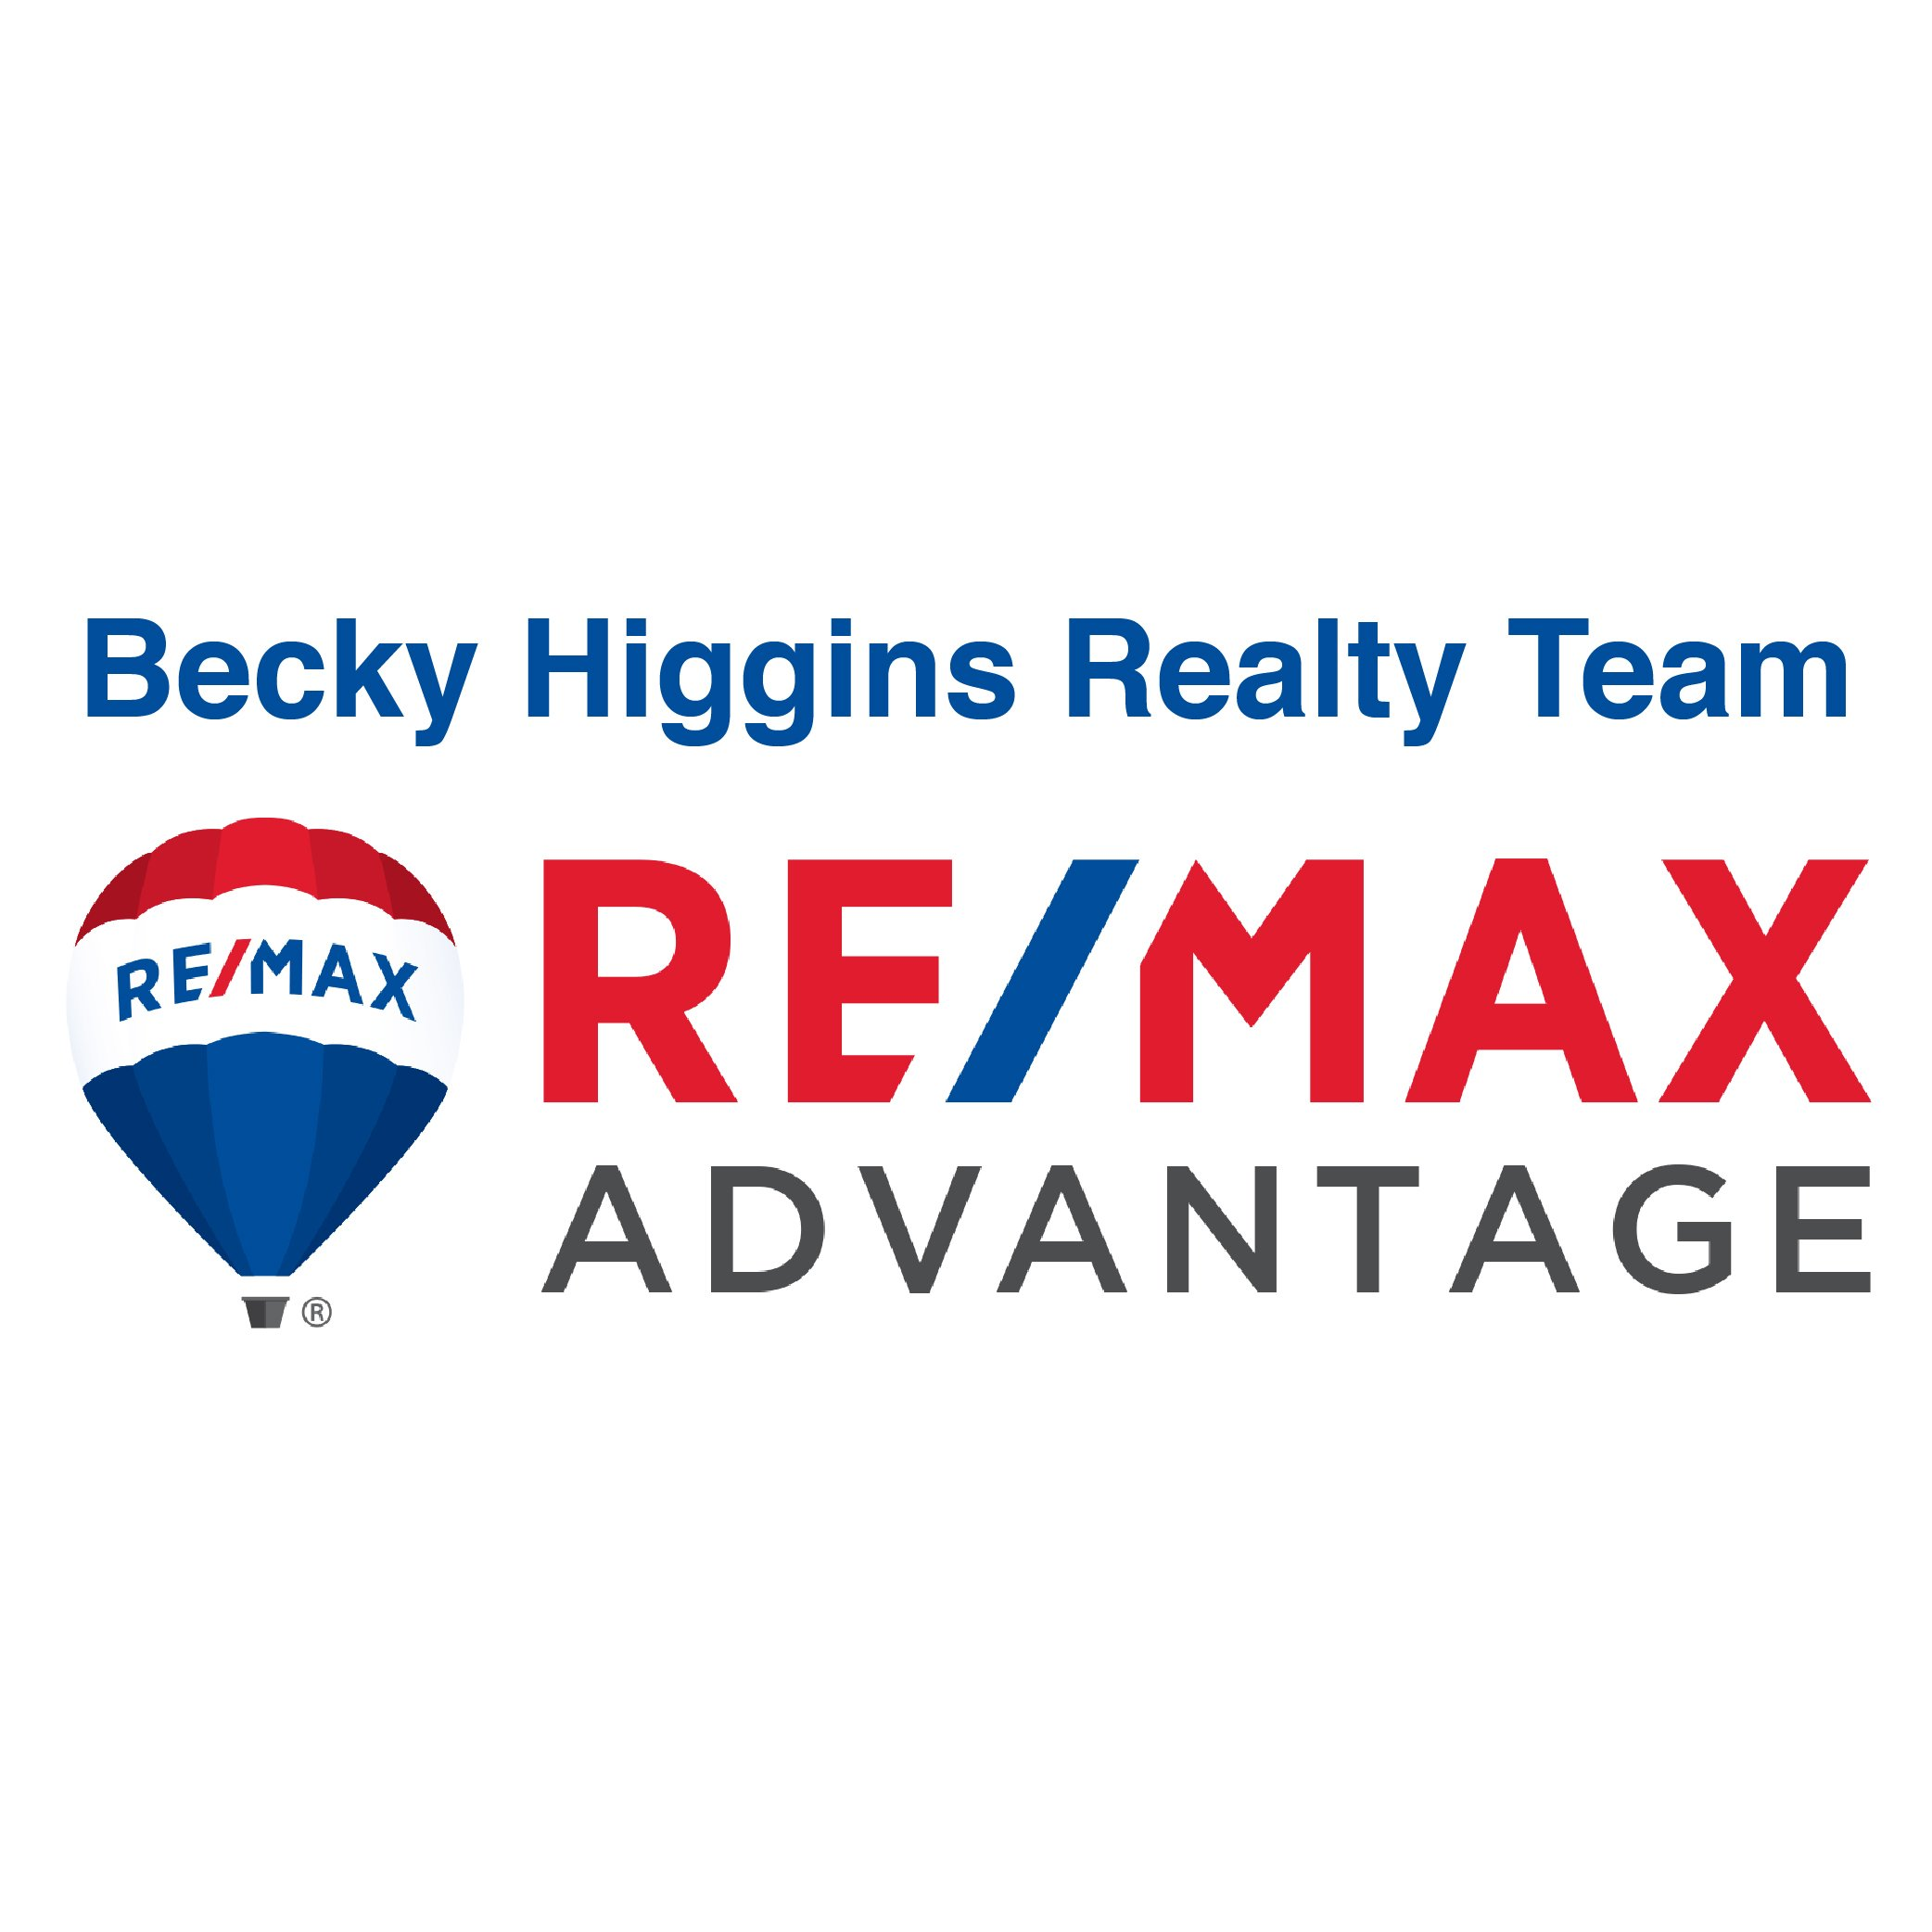 Becky Higgins Realty Team – RE/MAX Advantage